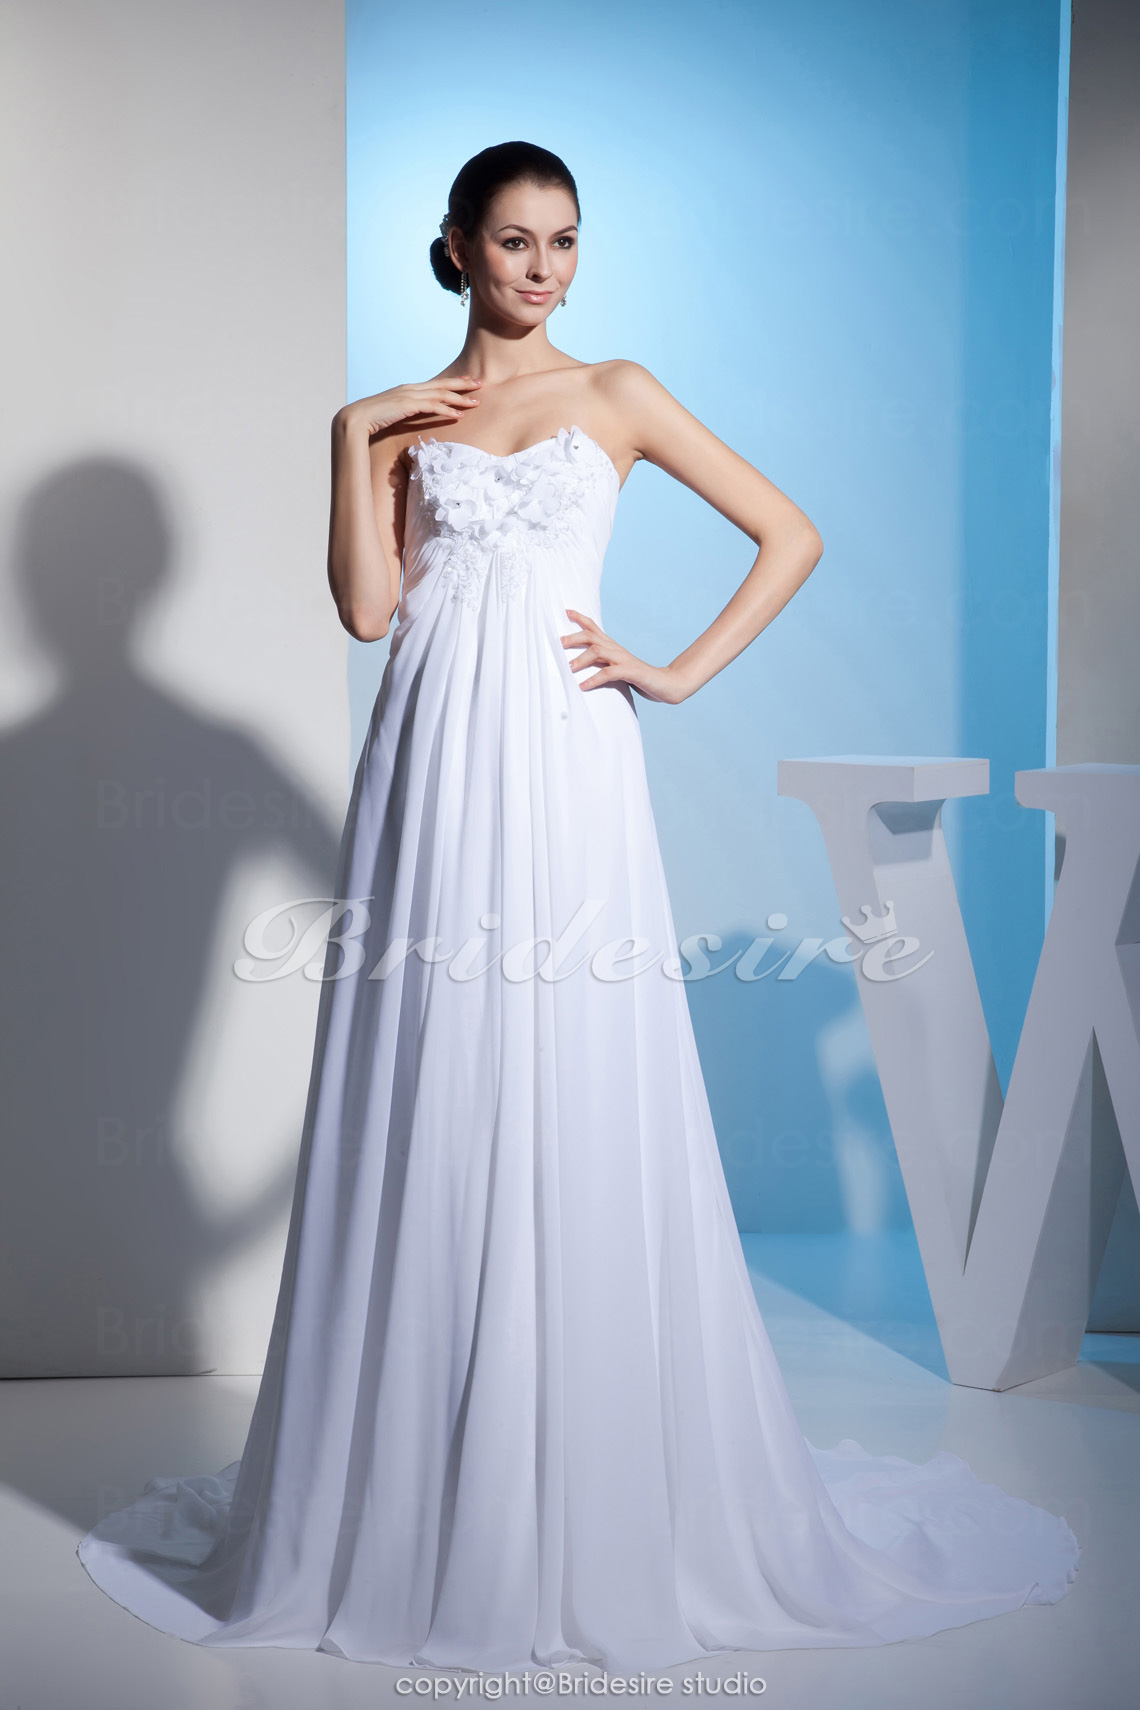 A-line Sweetheart Floor-length Sleeveless Chiffon Wedding Dress